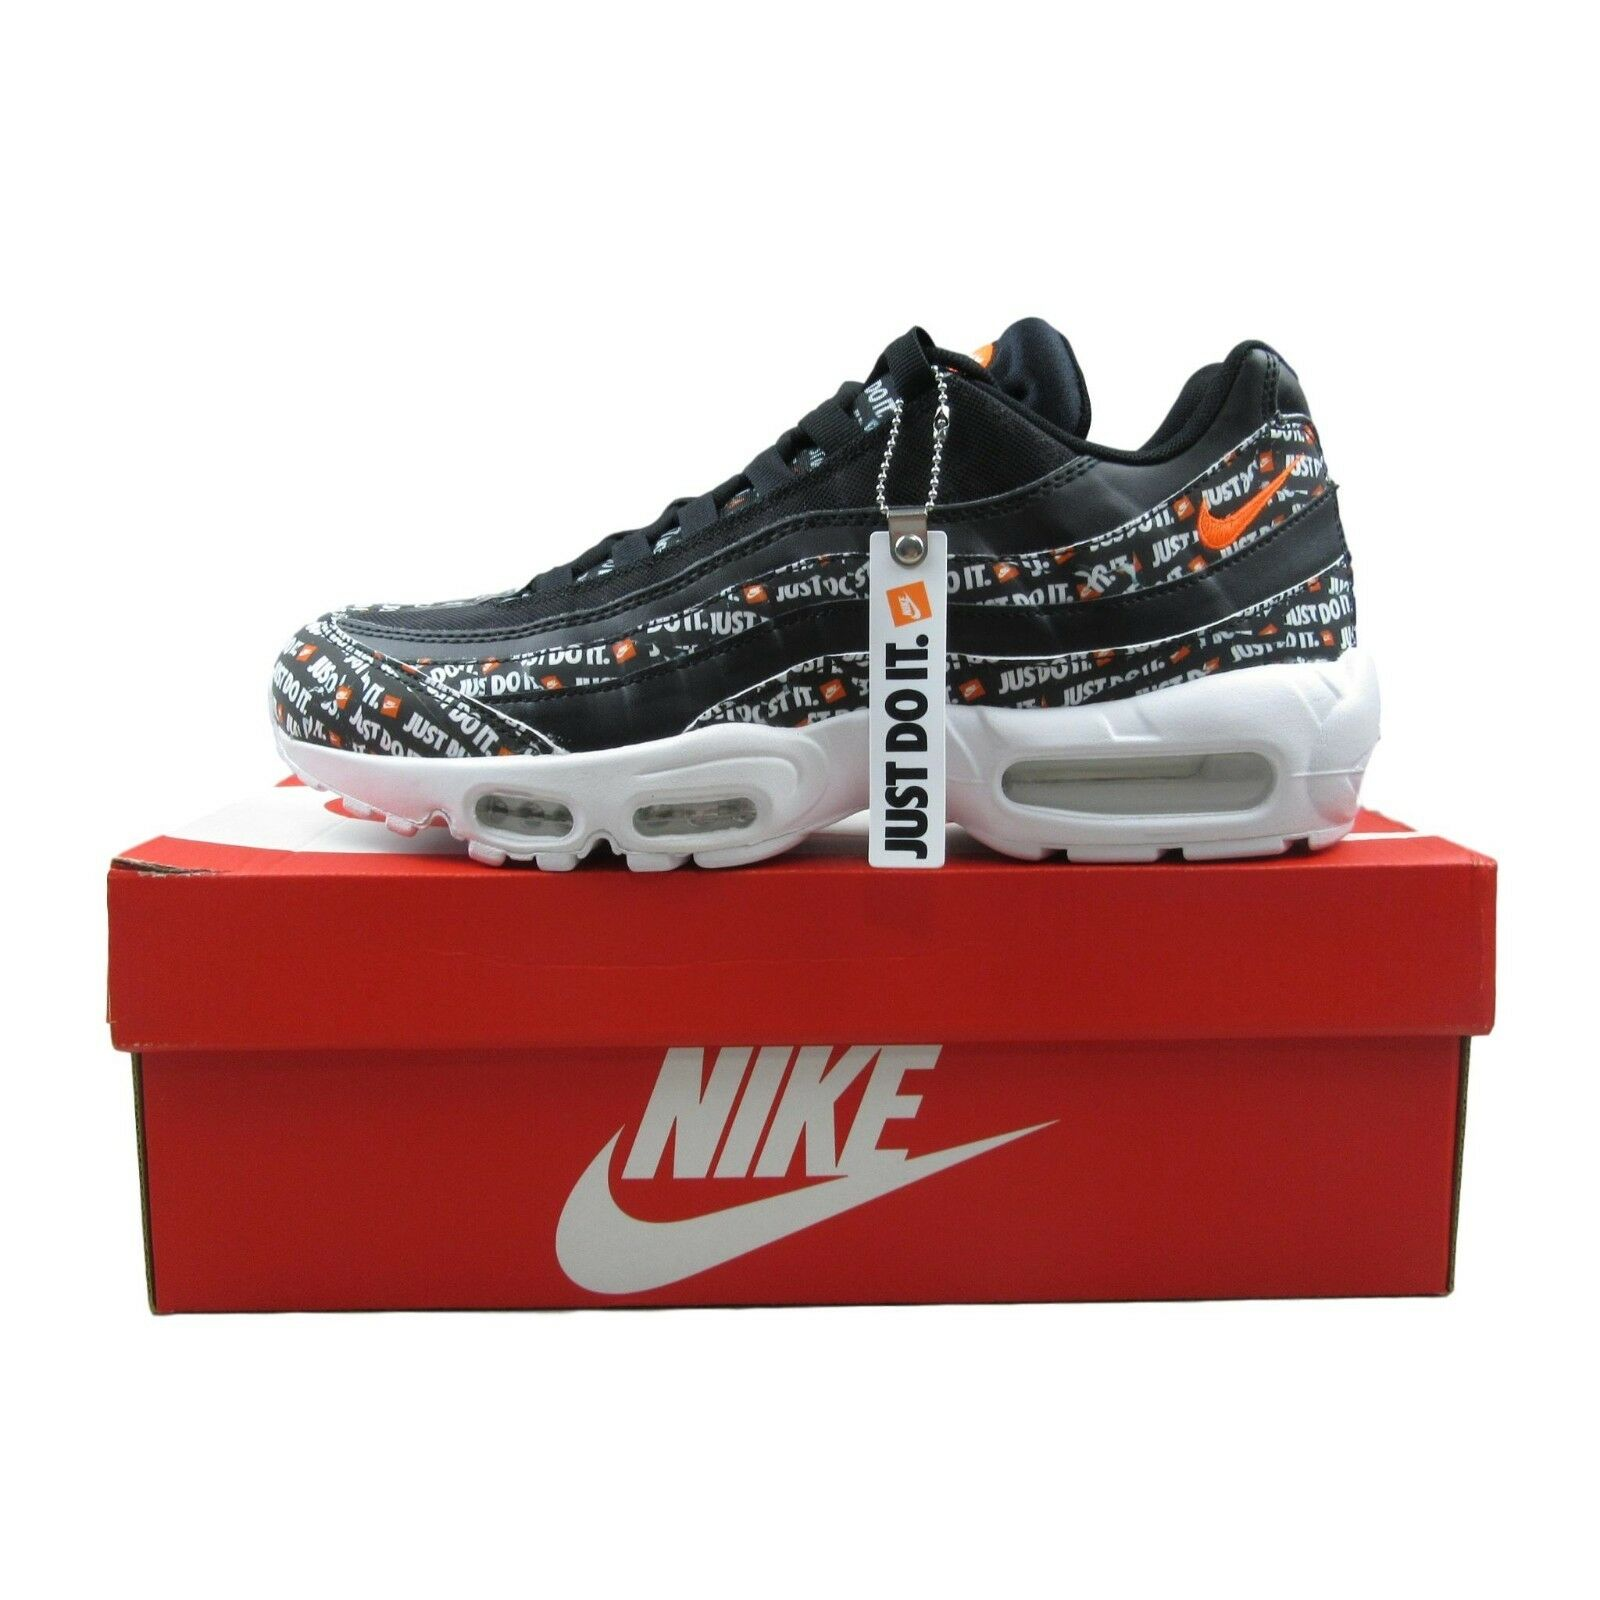 ef13f077dbc15a Nike Air Max 95 SE Black Just Do It Running Shoes Size 9 Mens AV6246 001